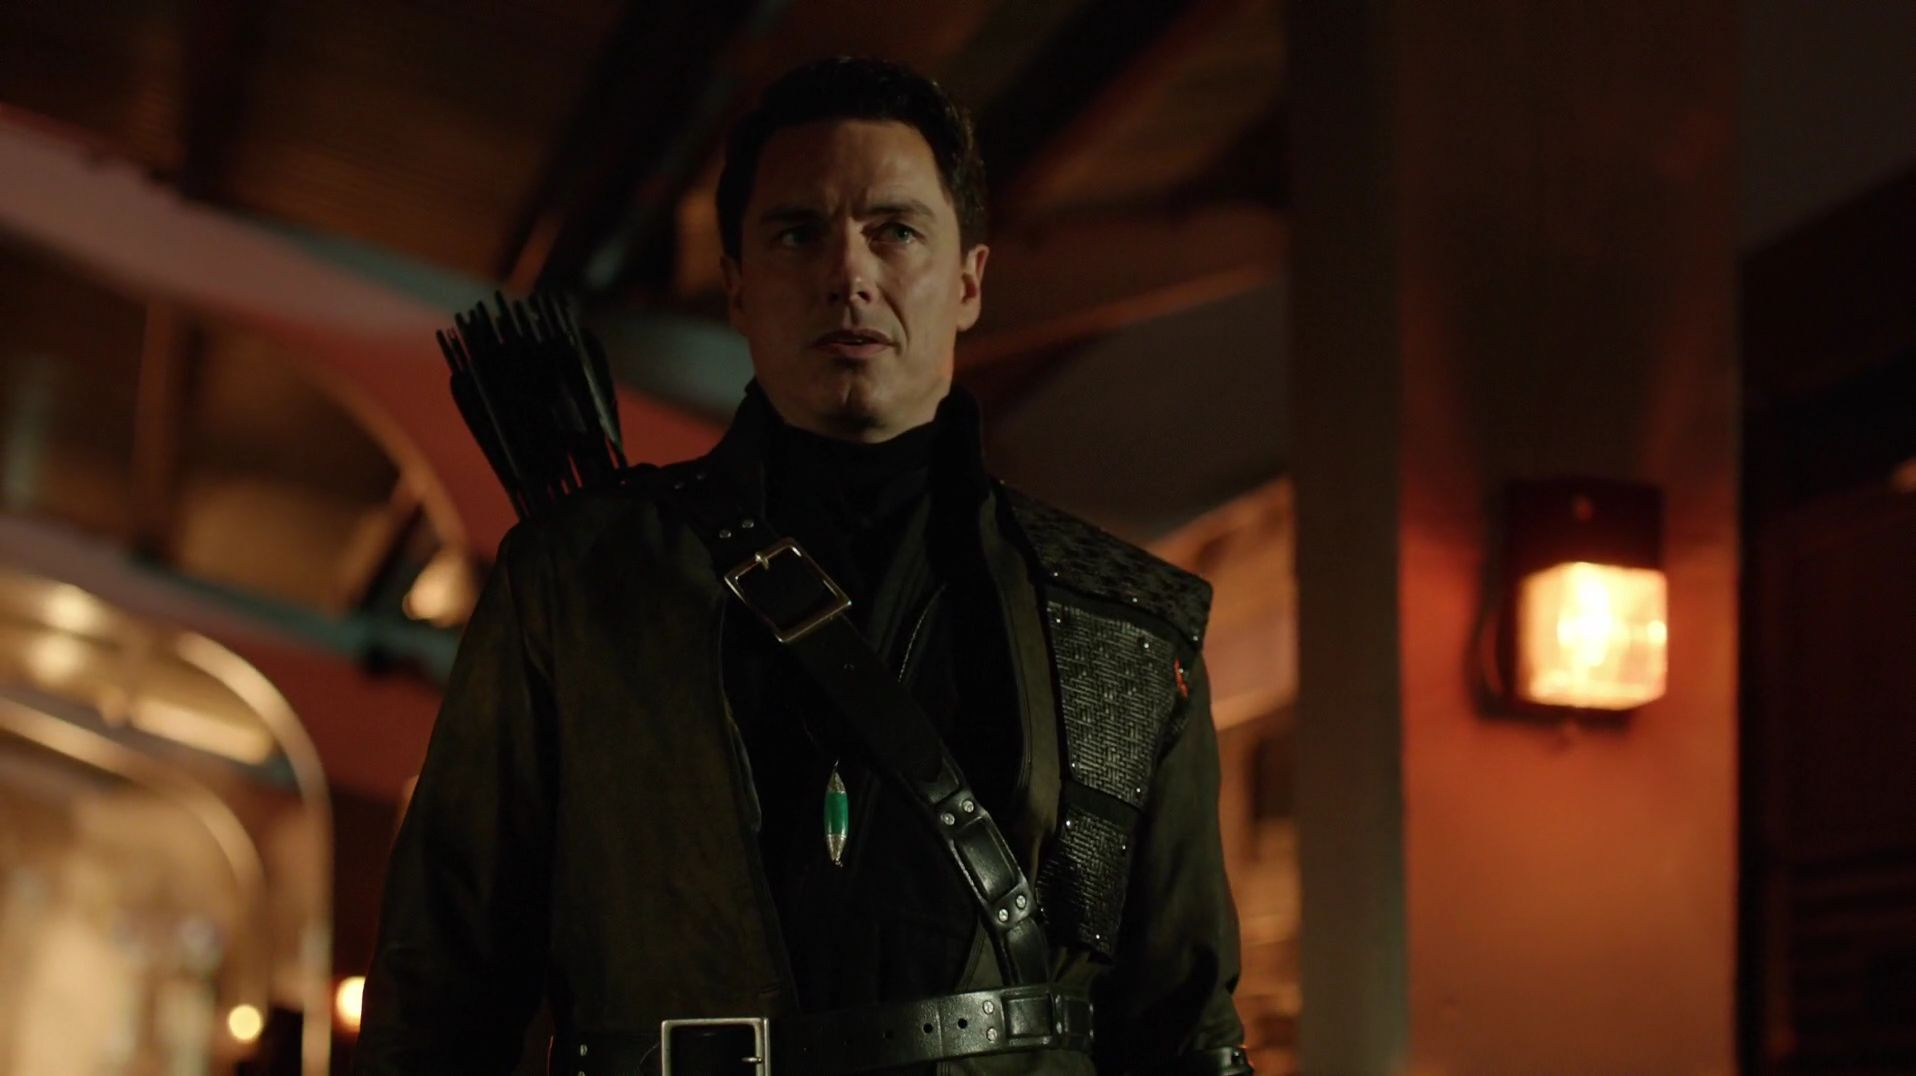 malcolm merlyn alive arrow season 6 lazarus pit thanatos guild